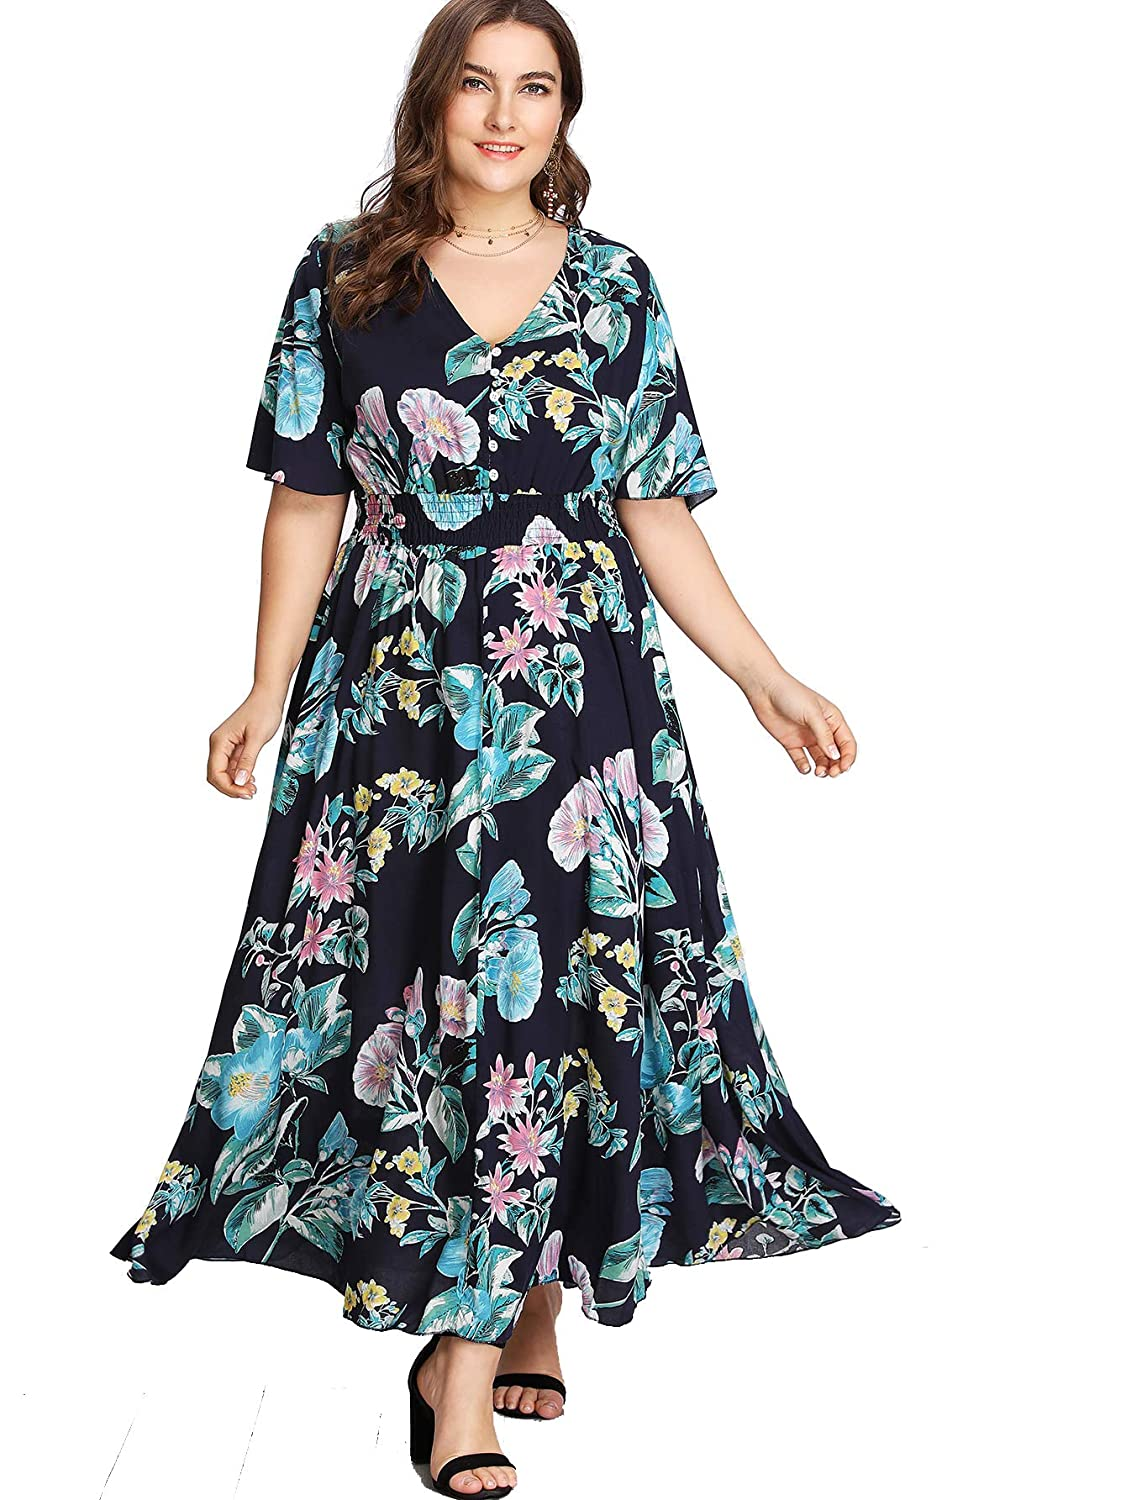 2732fcabcd322 Milumia Plus Size Button up Dress Short Sleeves Floral Maxi Dresses Boho  Fit Flare A Line Dress at Amazon Women s Clothing store